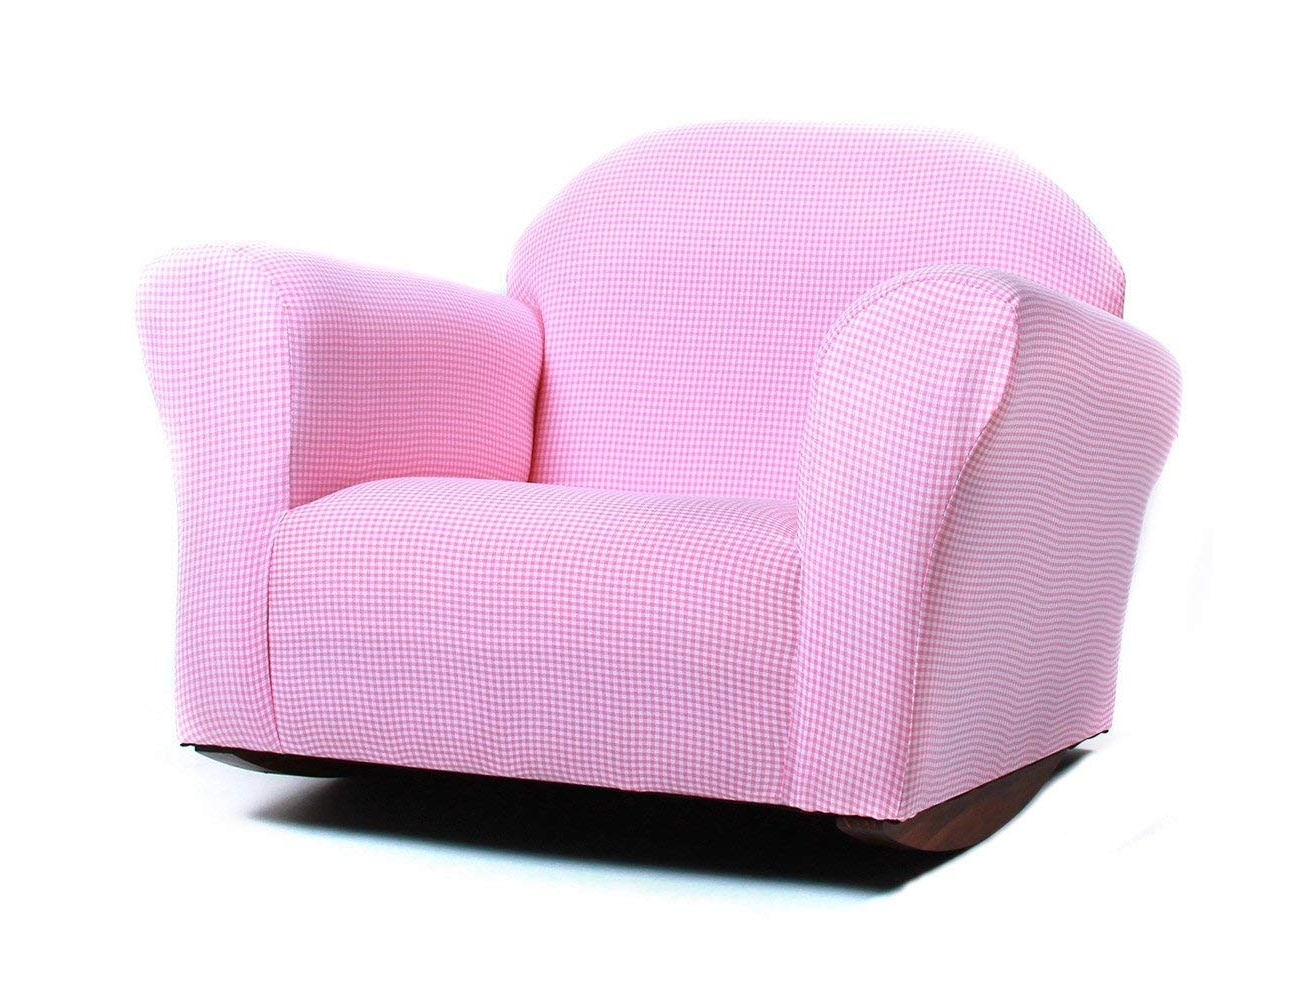 Amazon: Keet Roundy Rocking Kid's Chair Gingham, Pink: Baby Throughout Most Current Rocking Chairs For Toddlers (View 2 of 15)